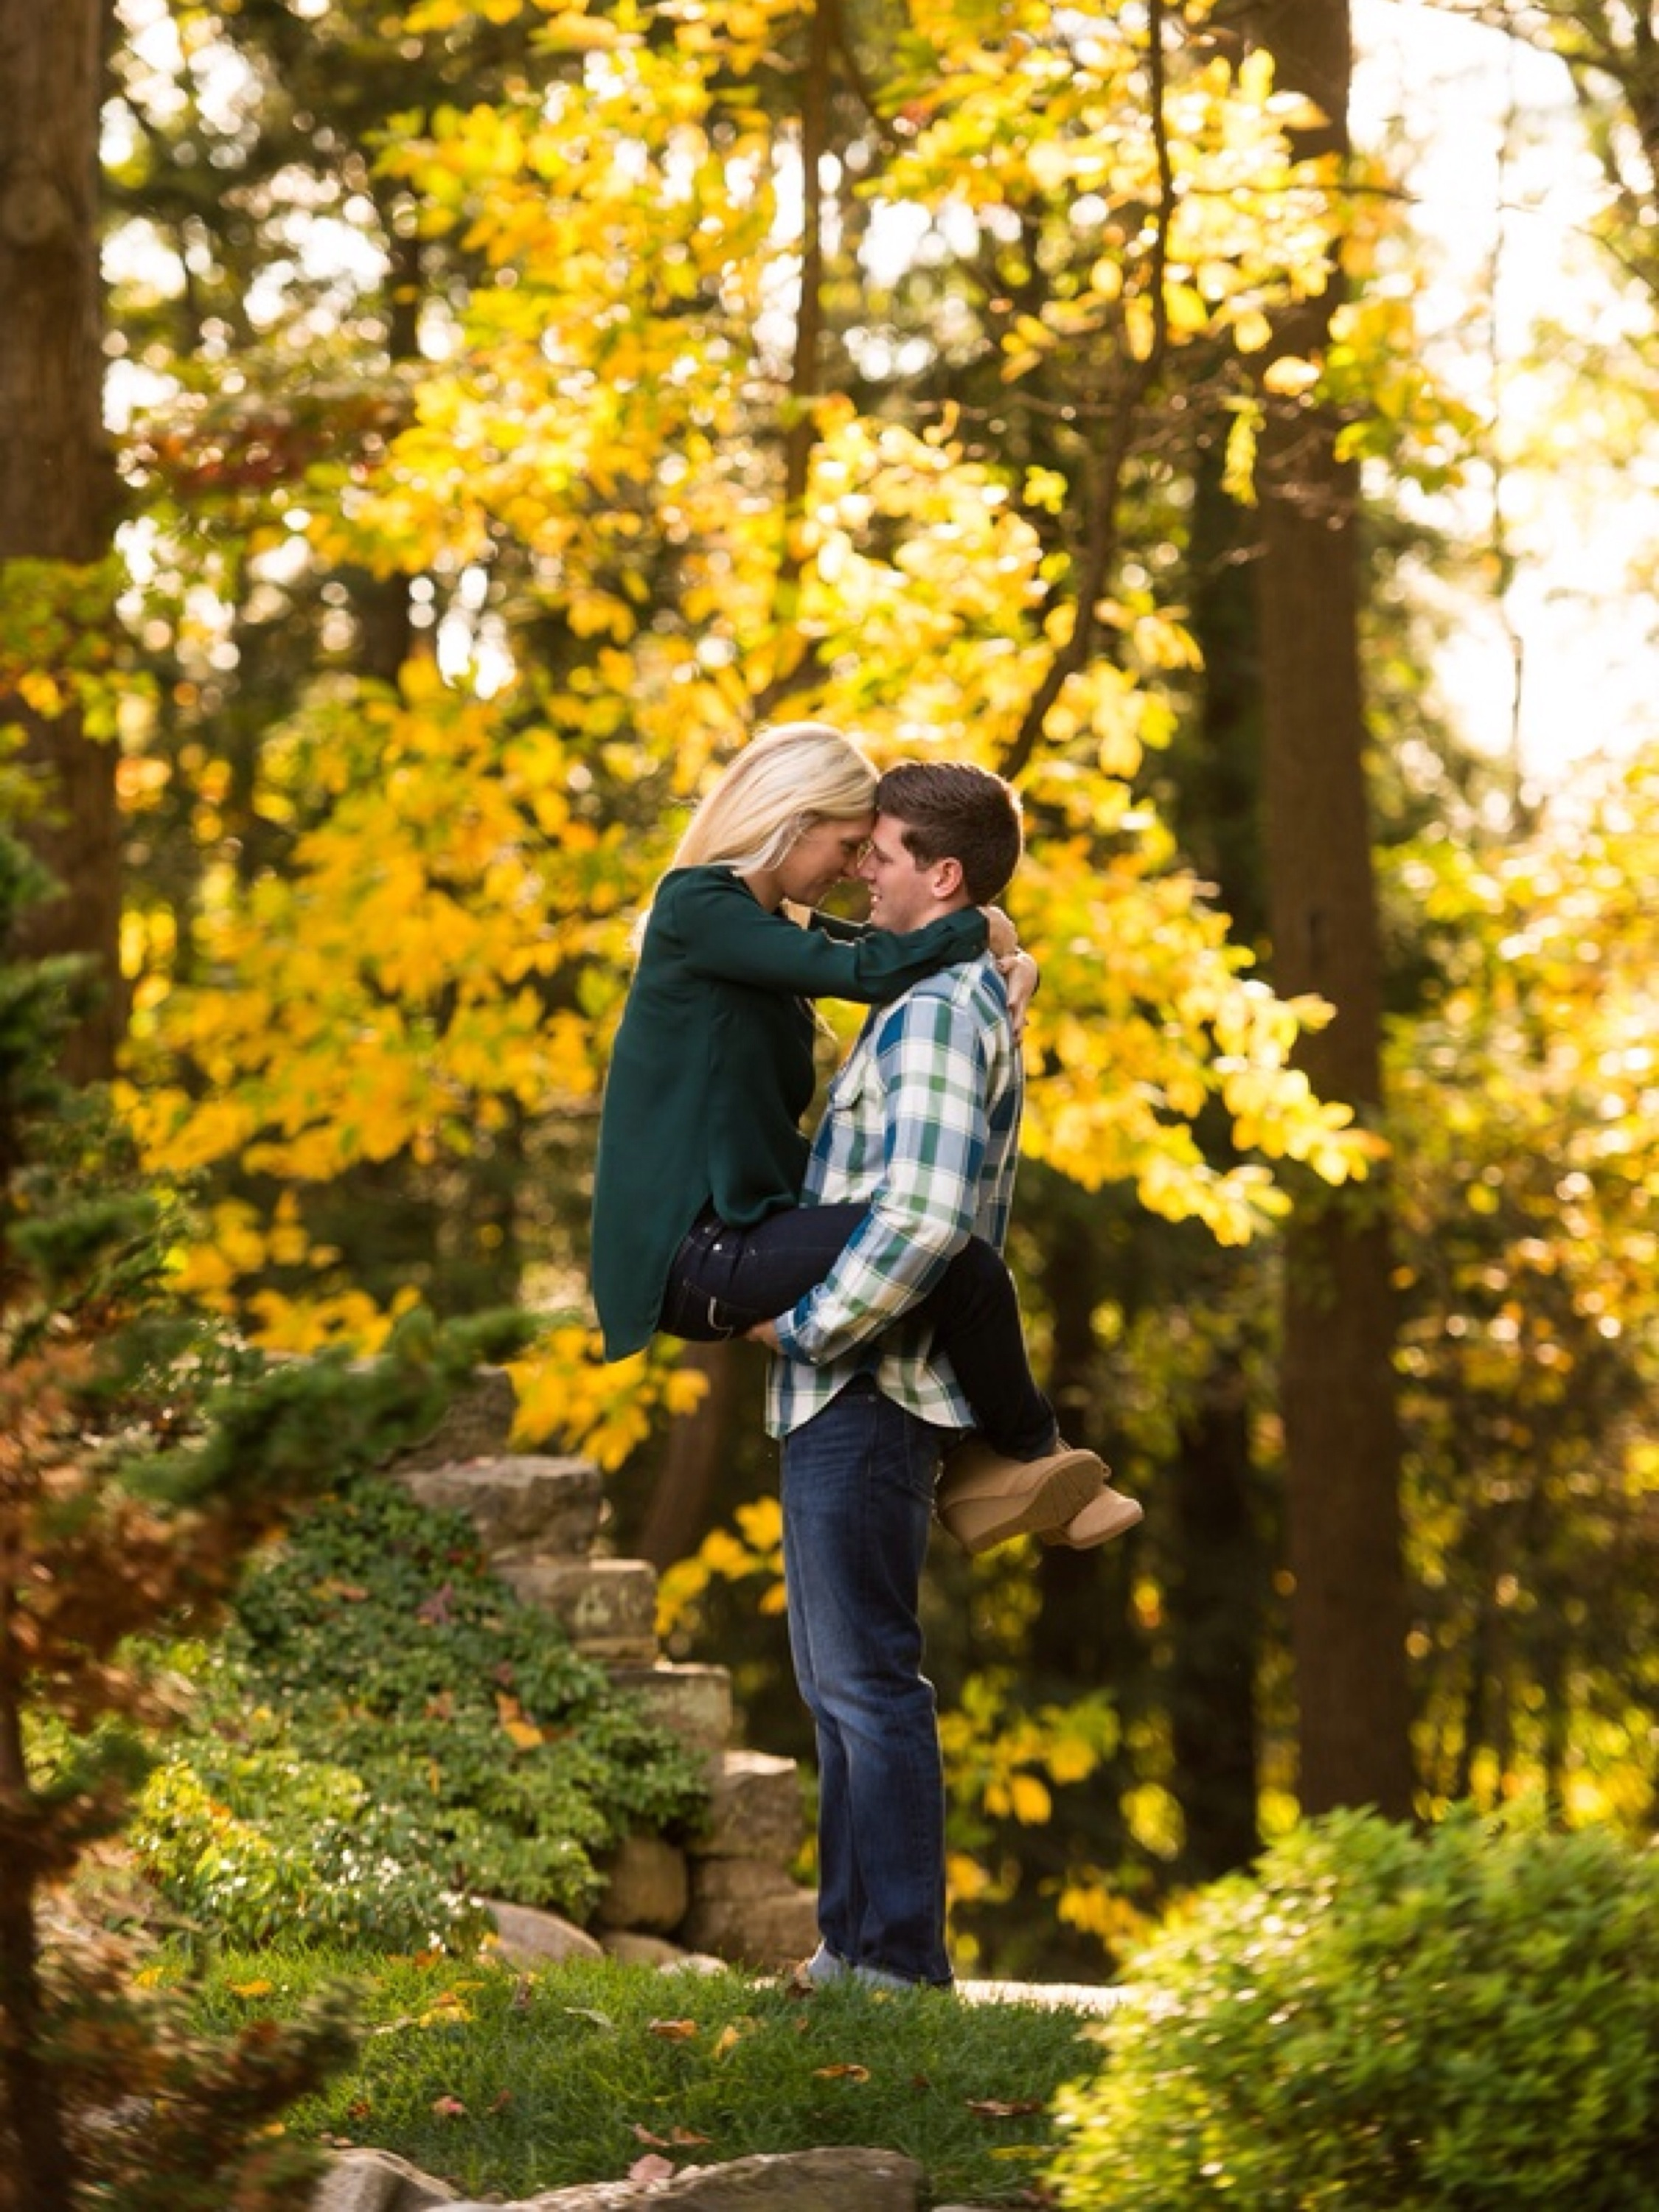 Stan Hywet Hall Engagement: Menning Photographic via Heather Renee Celebrations